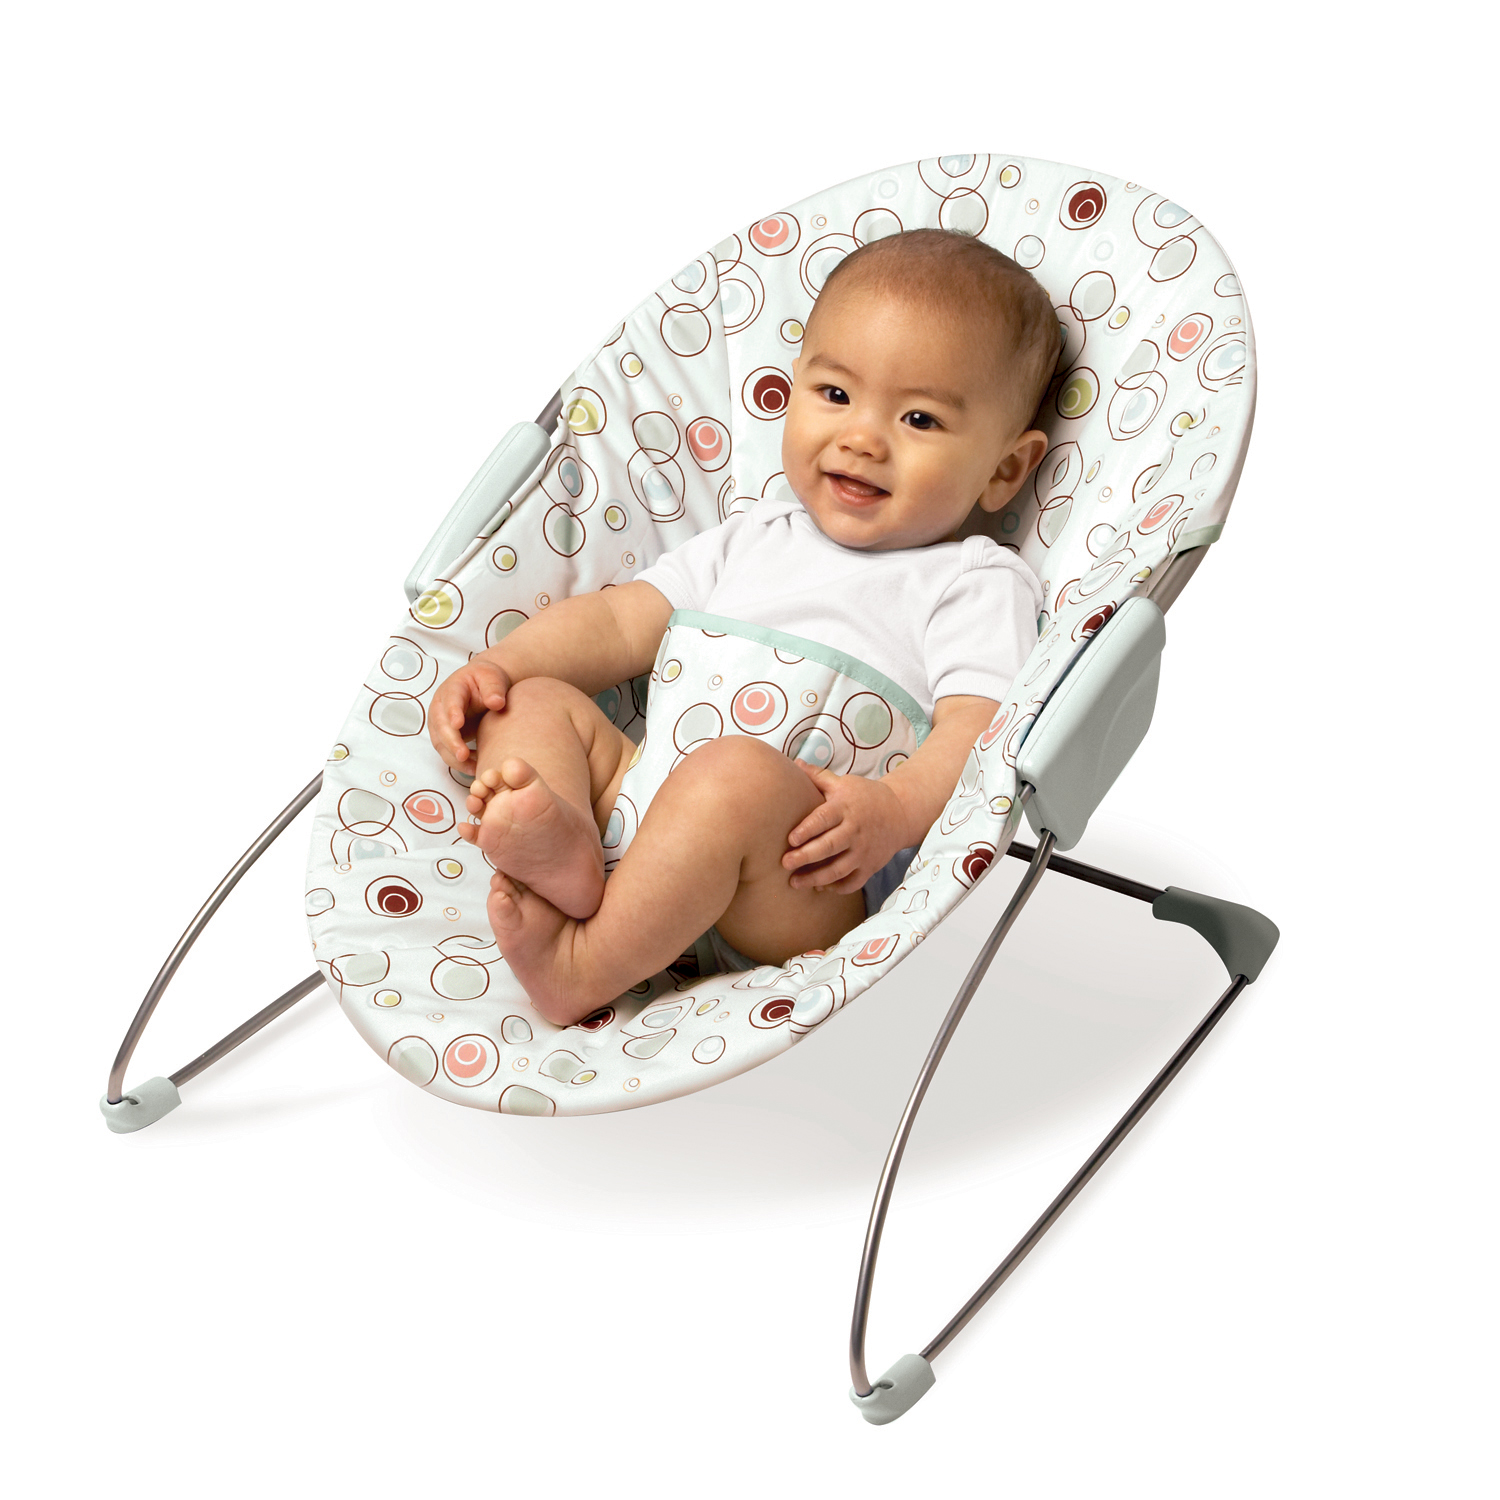 Chairs For Babies 5 Of The Best Bouncy Chairs For Babies Babycare Mag